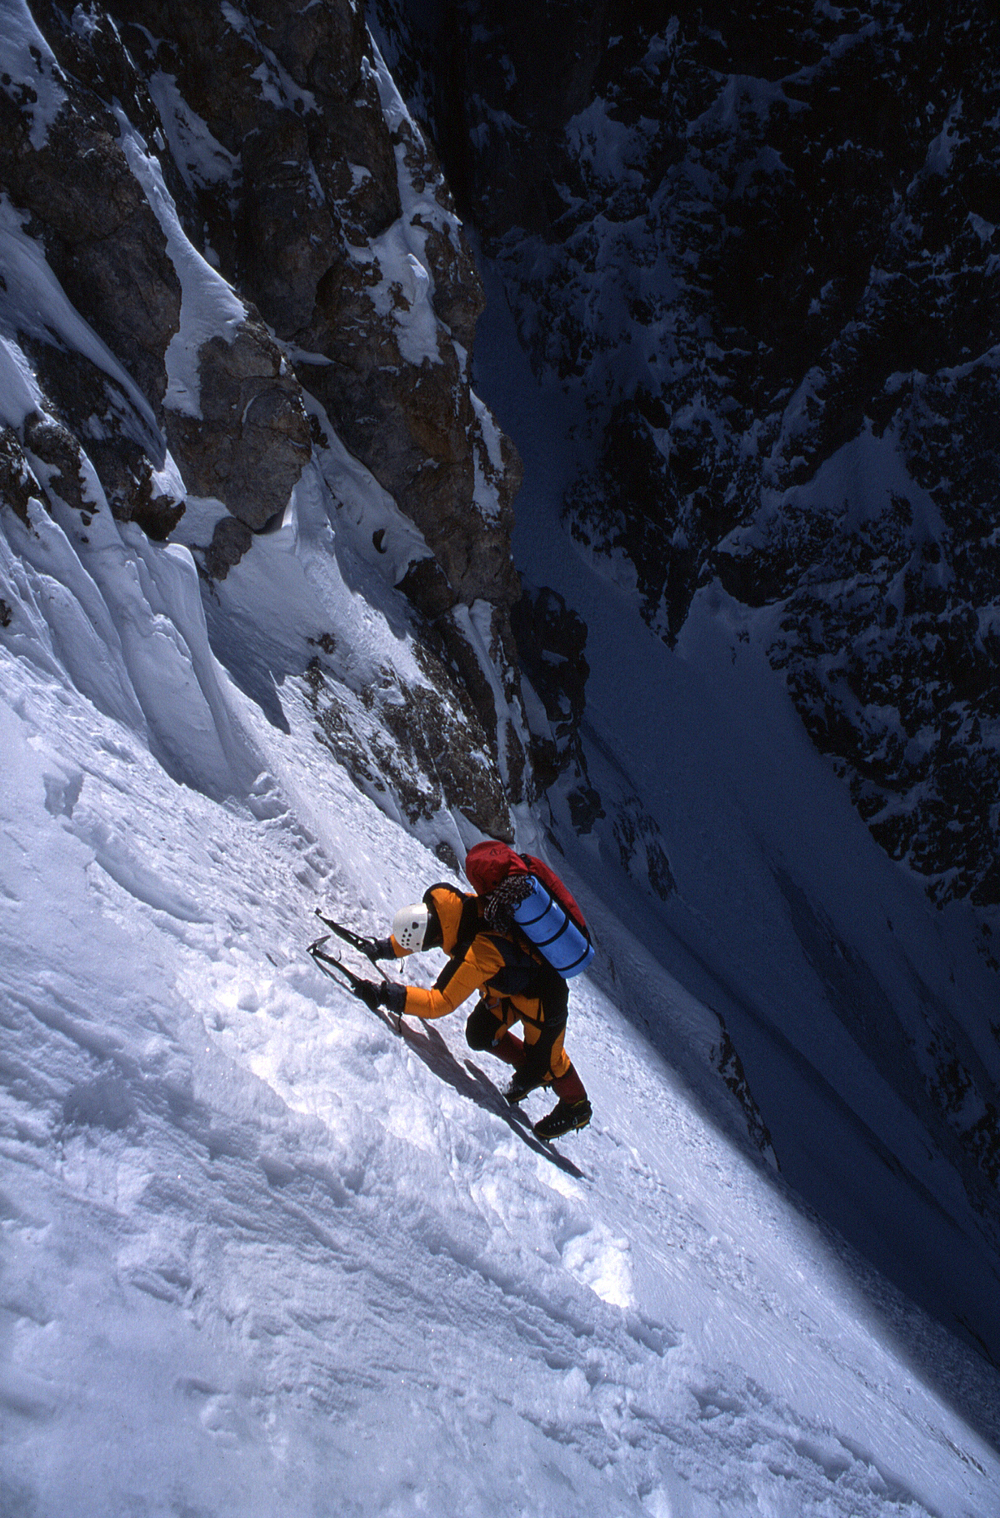 Near the top of the immense first couloir.